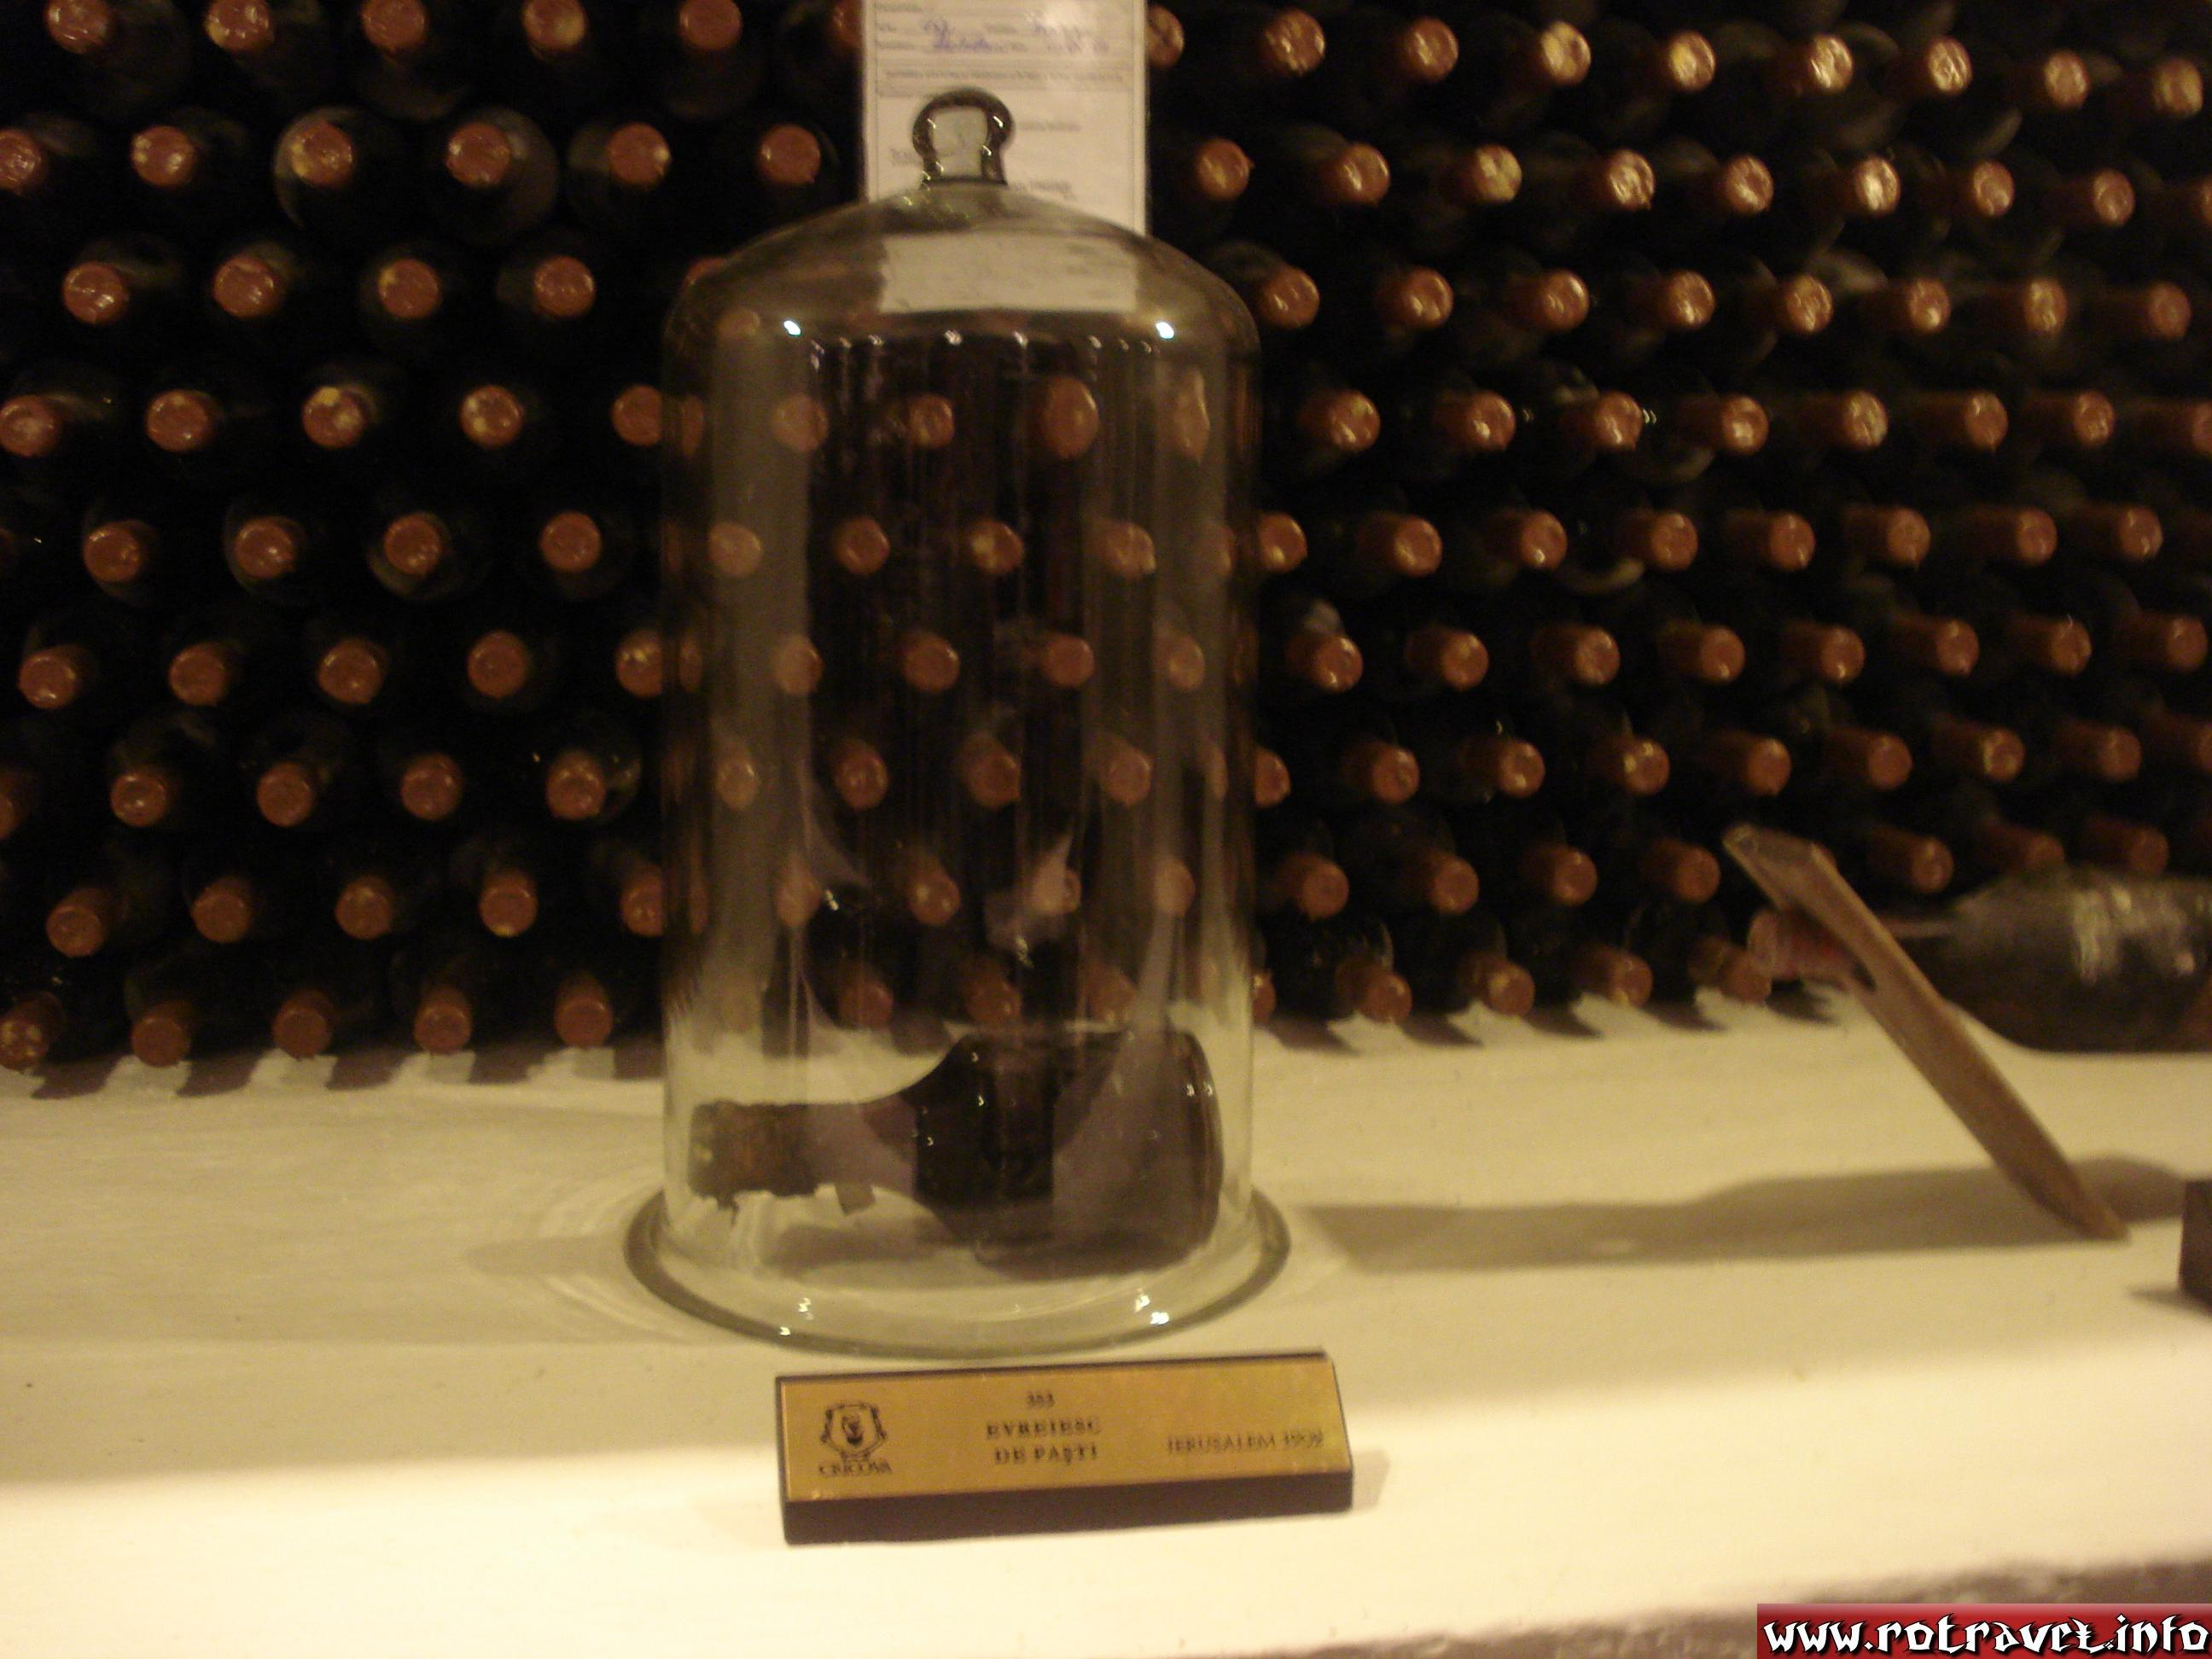 The oldest bottle of Wine from Cricova, taken from Israel, in 1902.